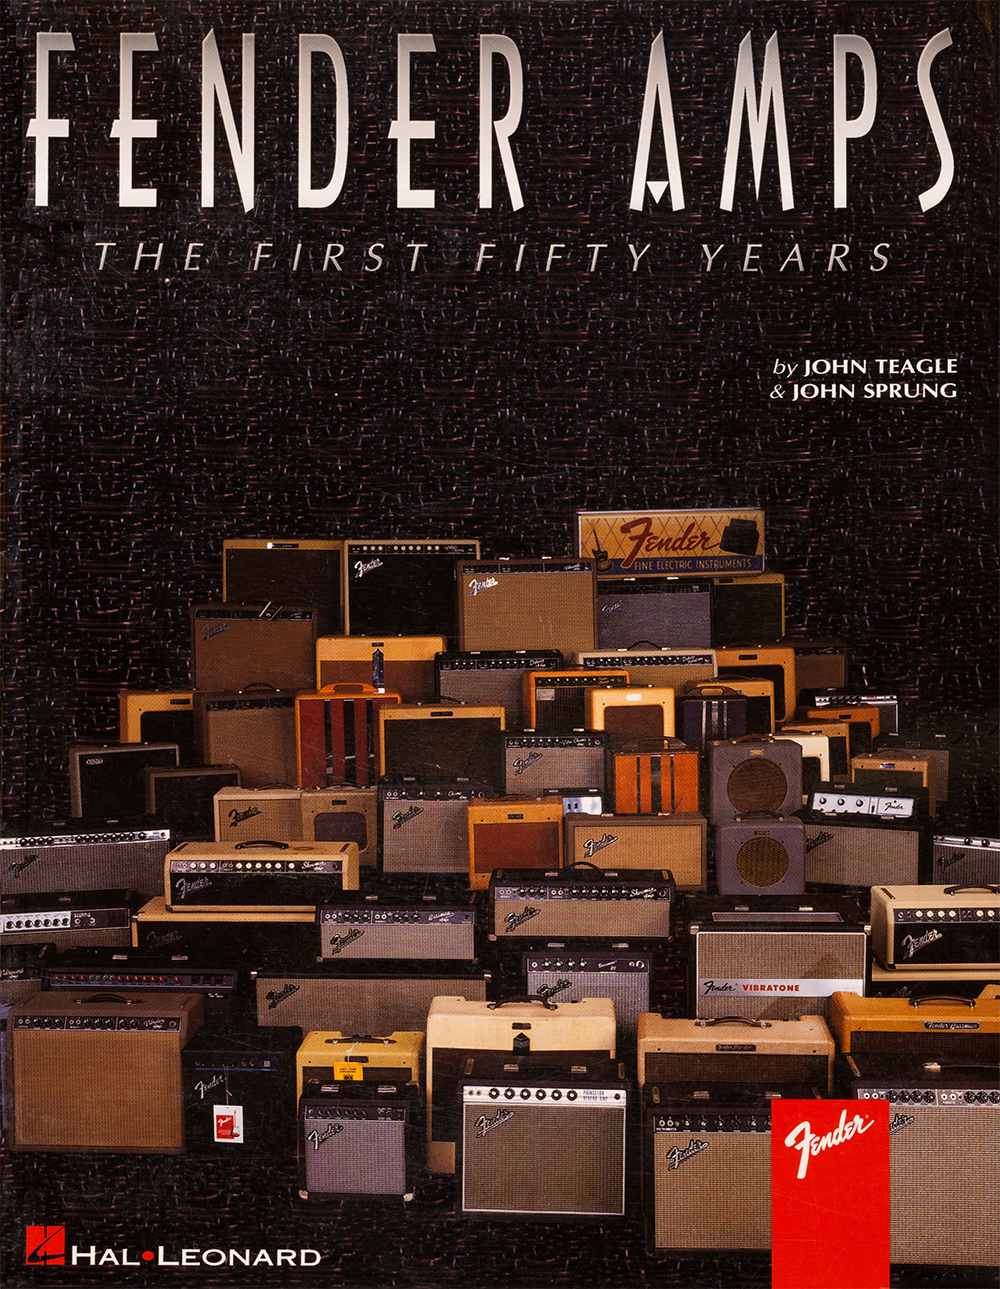 fender amps, the first 50 years, by john teagle, john sprung